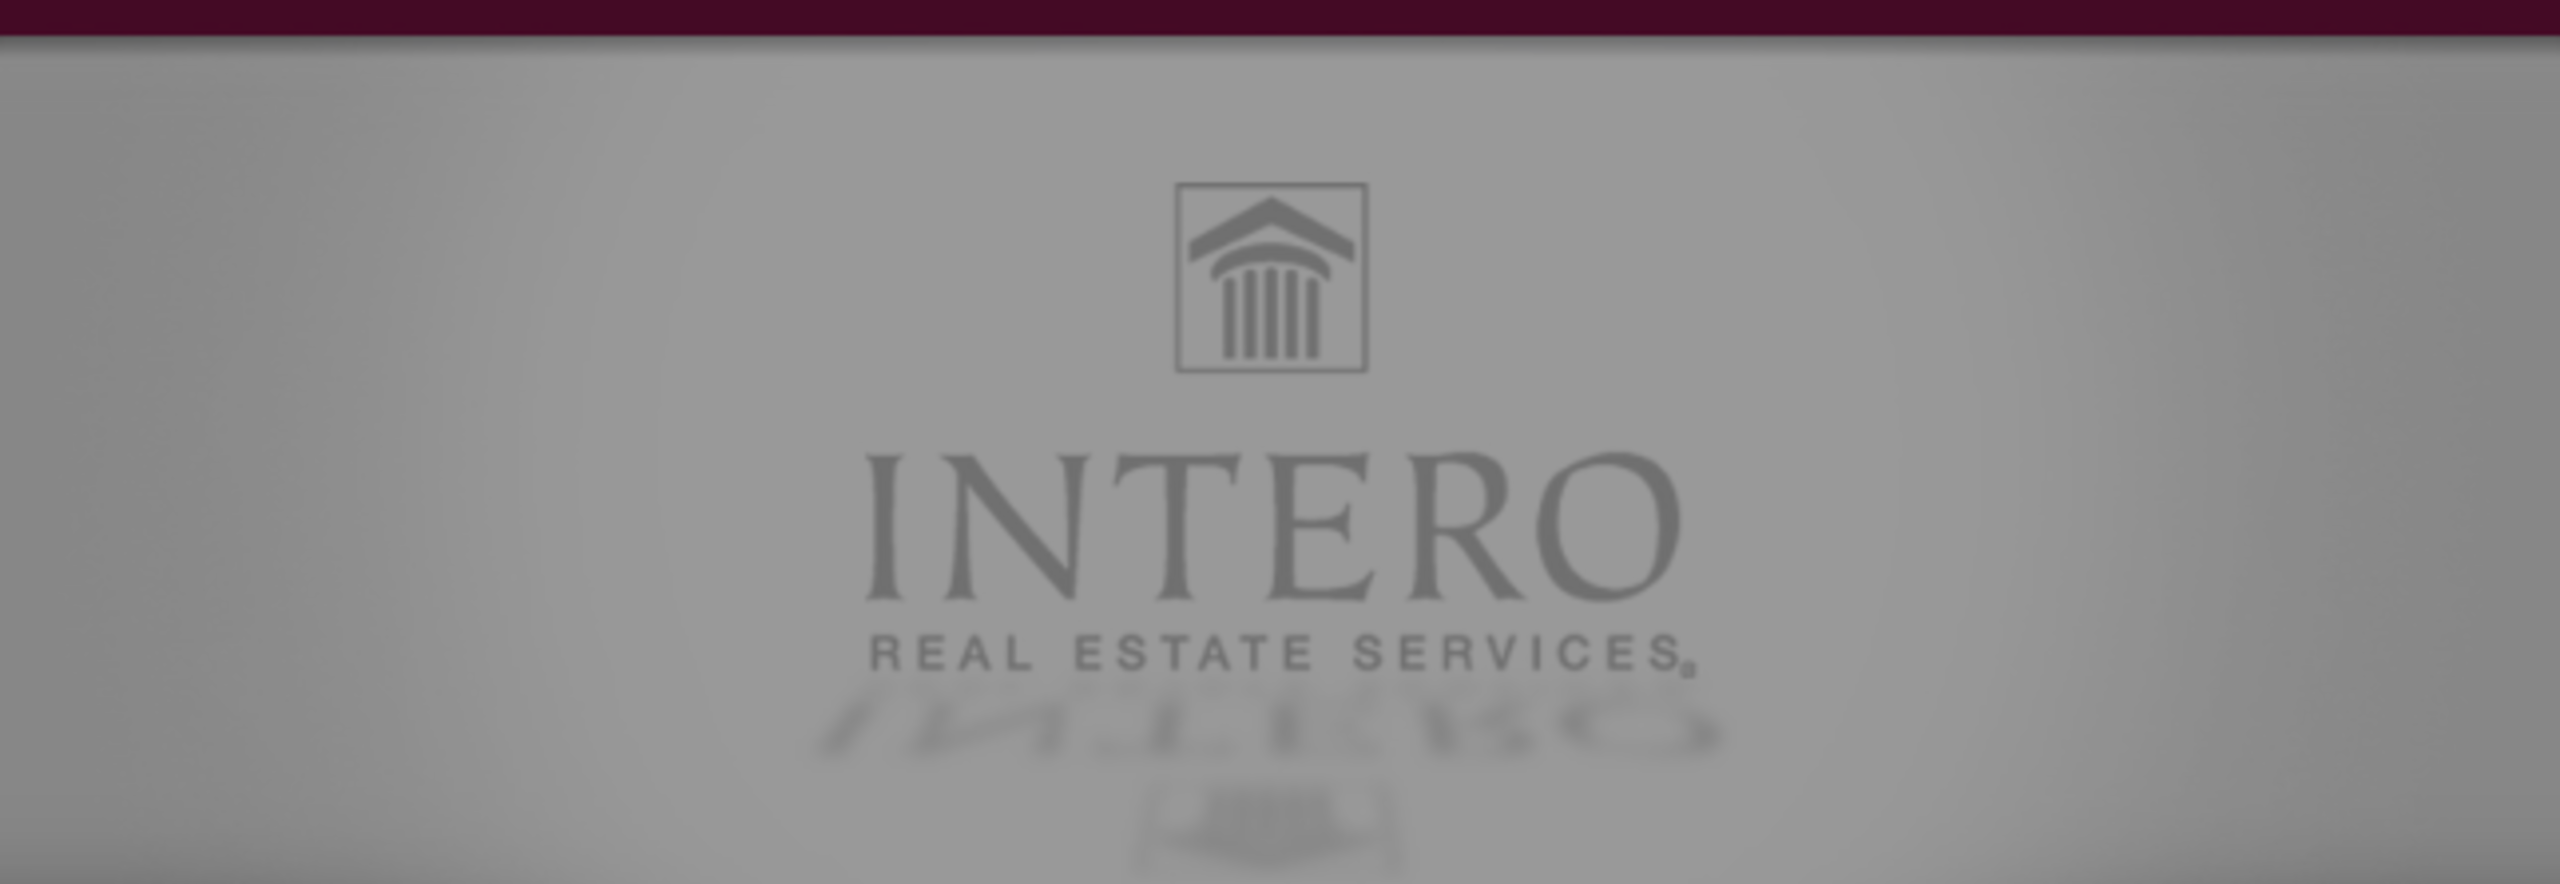 INTERO named BEST REAL ESTATE BROKERAGE in the BAY AREA 2017